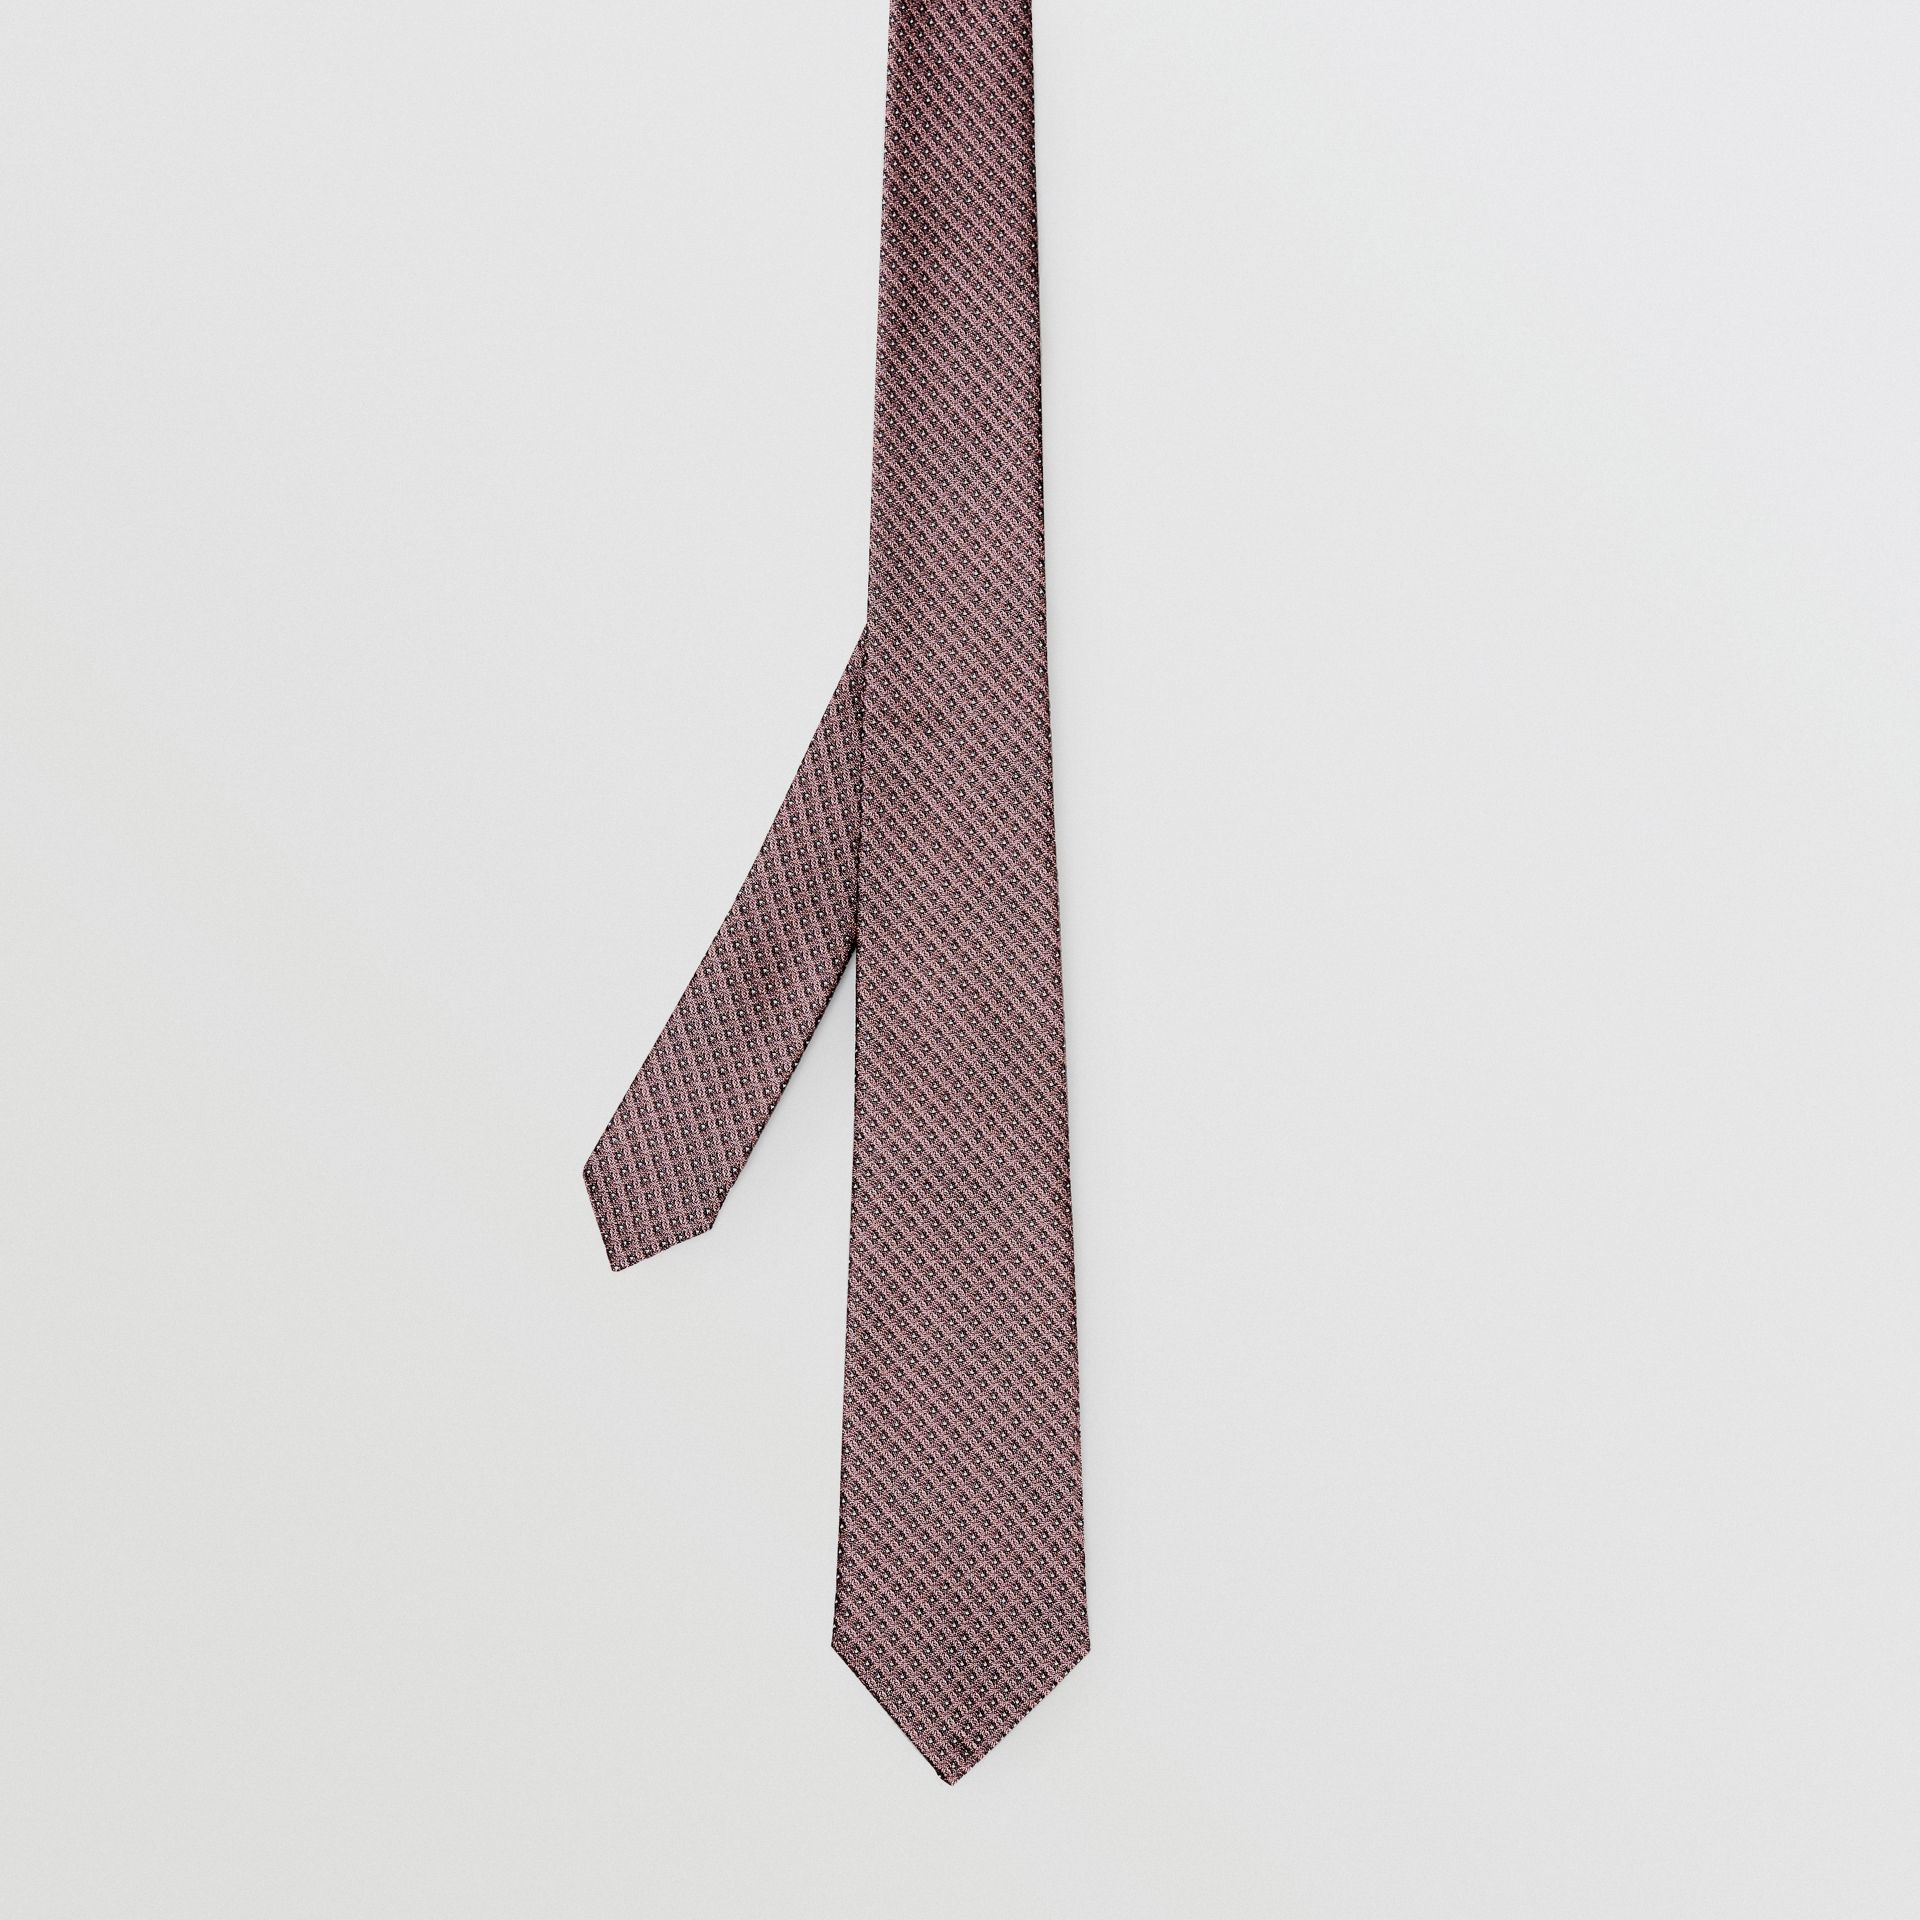 Classic Cut Micro Dot Silk Jacquard Tie in Garnet Pink - Men | Burberry United States - gallery image 4